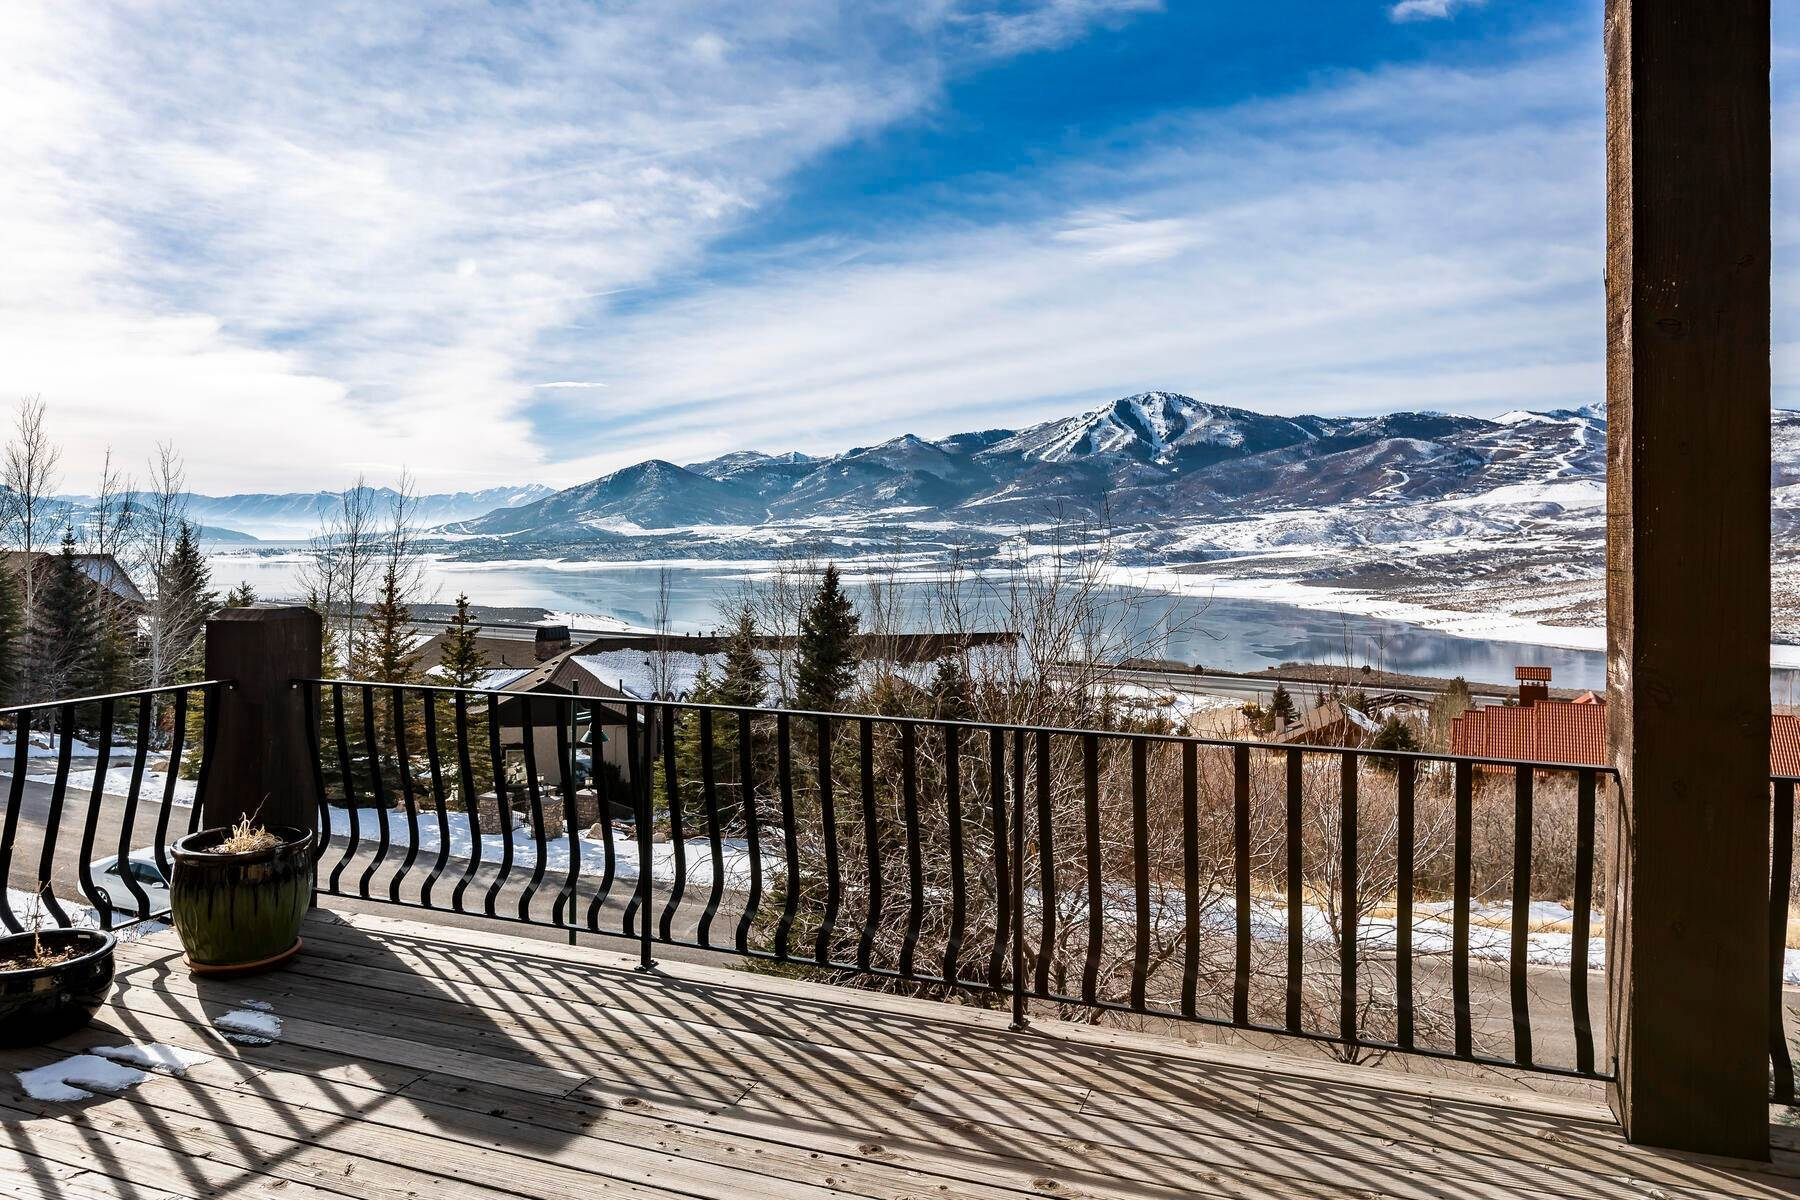 Single Family Homes for Sale at Unobstructed Deer Valley and Jordanelle Reservoir Views in Deer Mountain 12084 N Sage Hollow Circle Heber, Utah 84032 United States